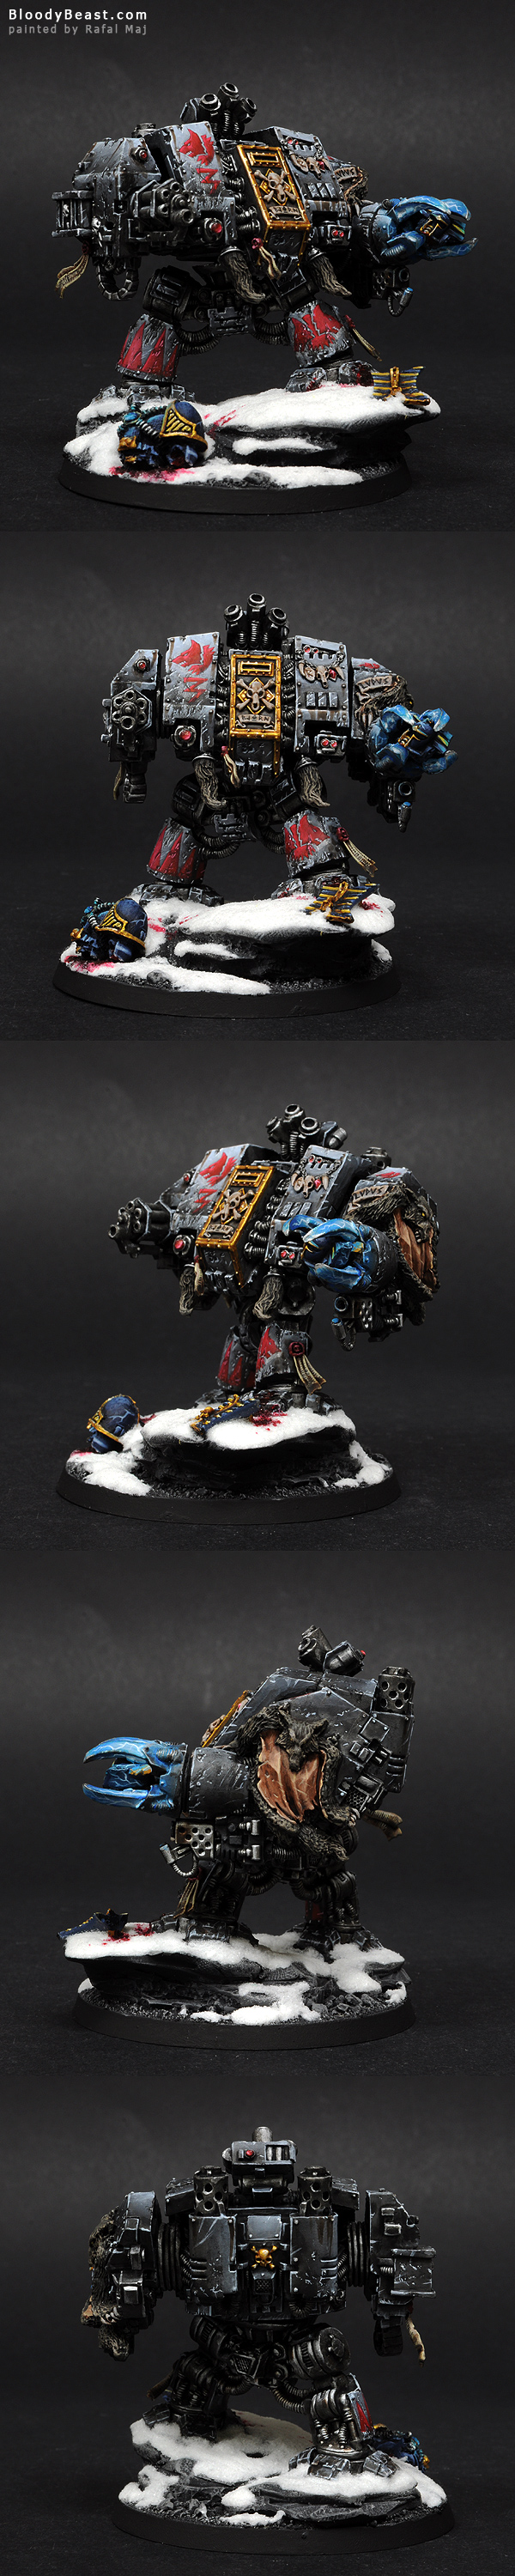 Space Wolves Bjorn The Fell-Handed painted by Rafal Maj (BloodyBeast.com)